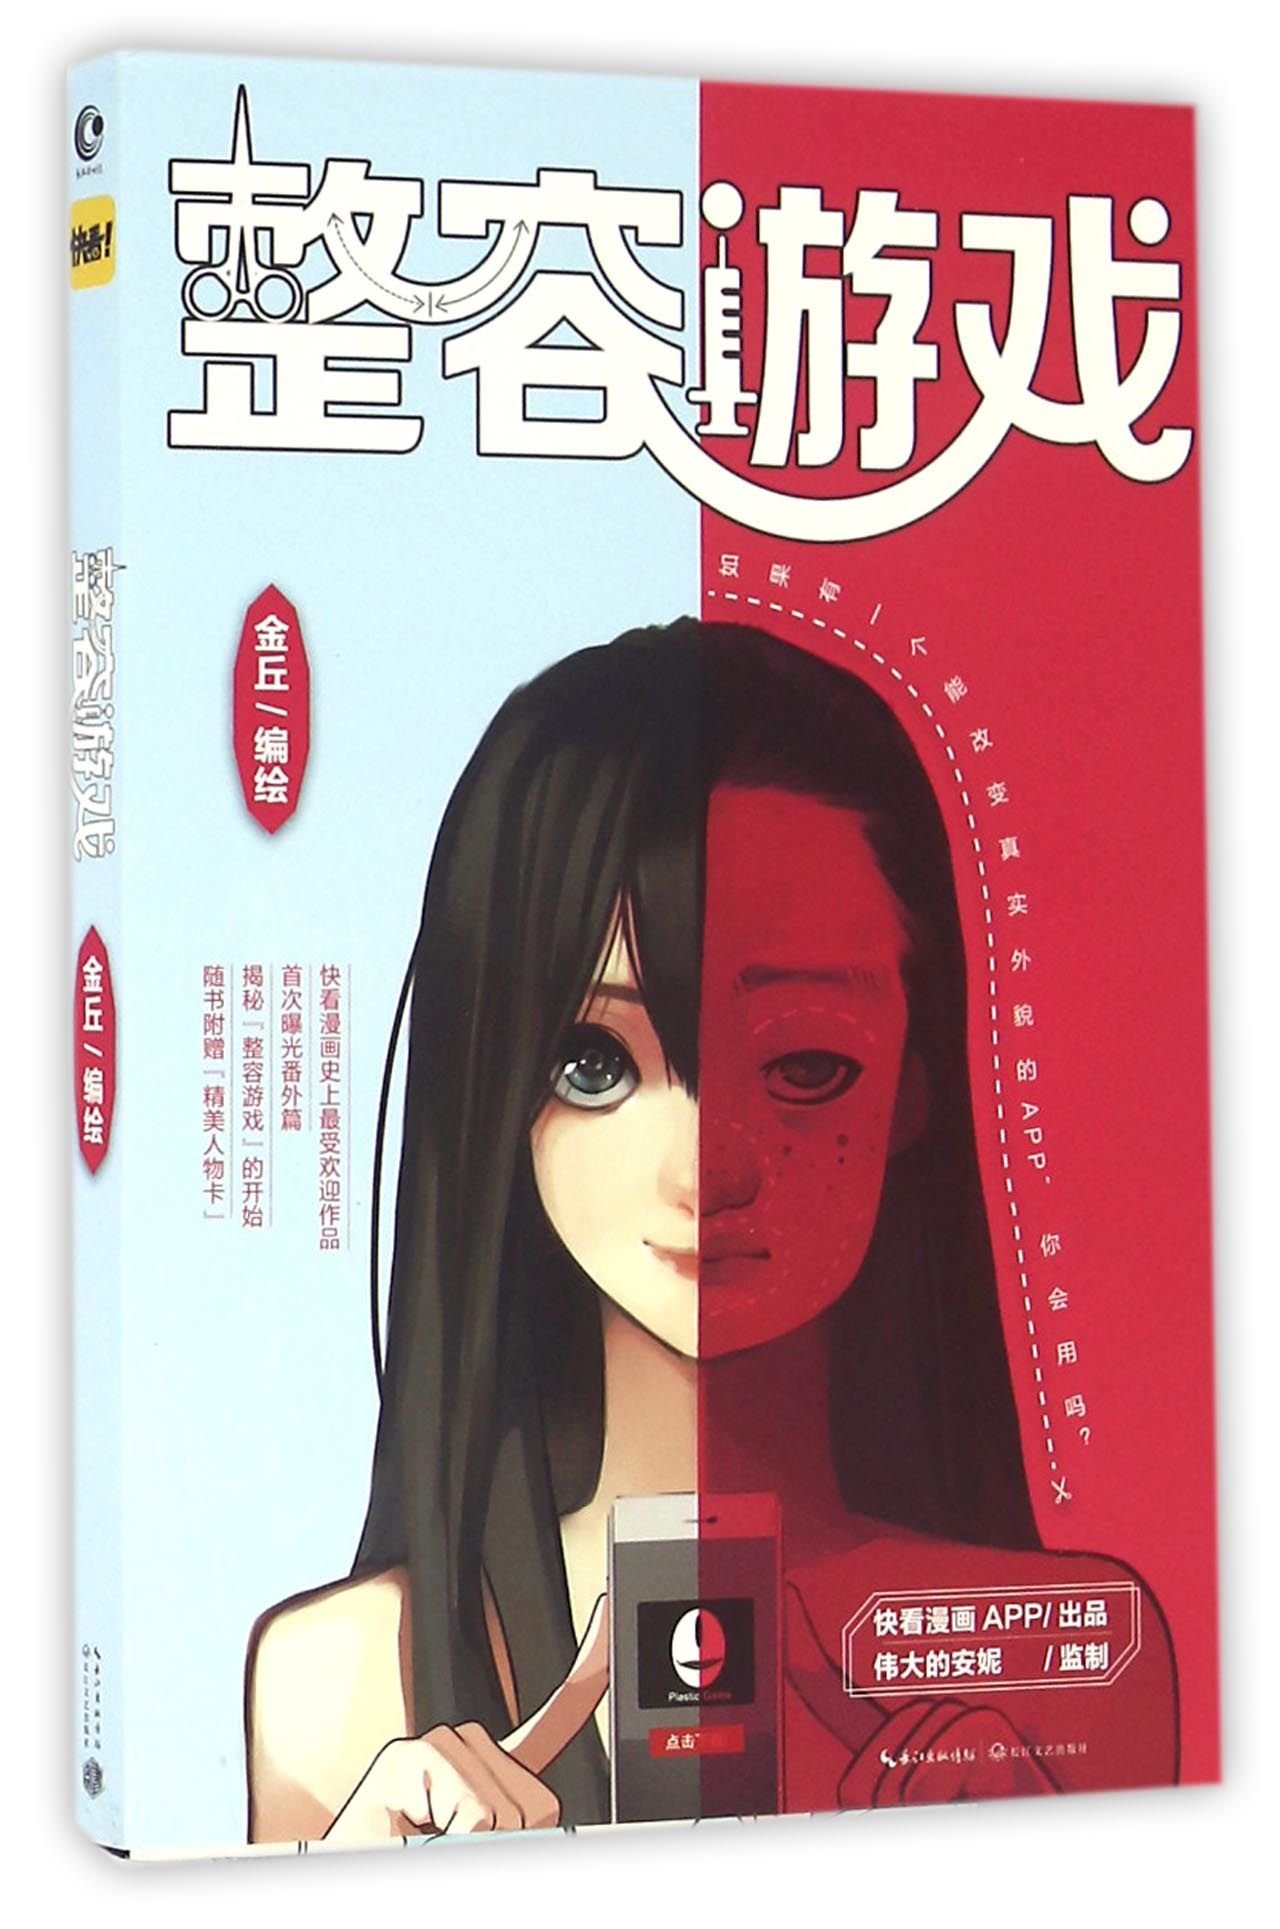 Beauty Game (Chinese Edition): Jin Qiu: 9787535487216